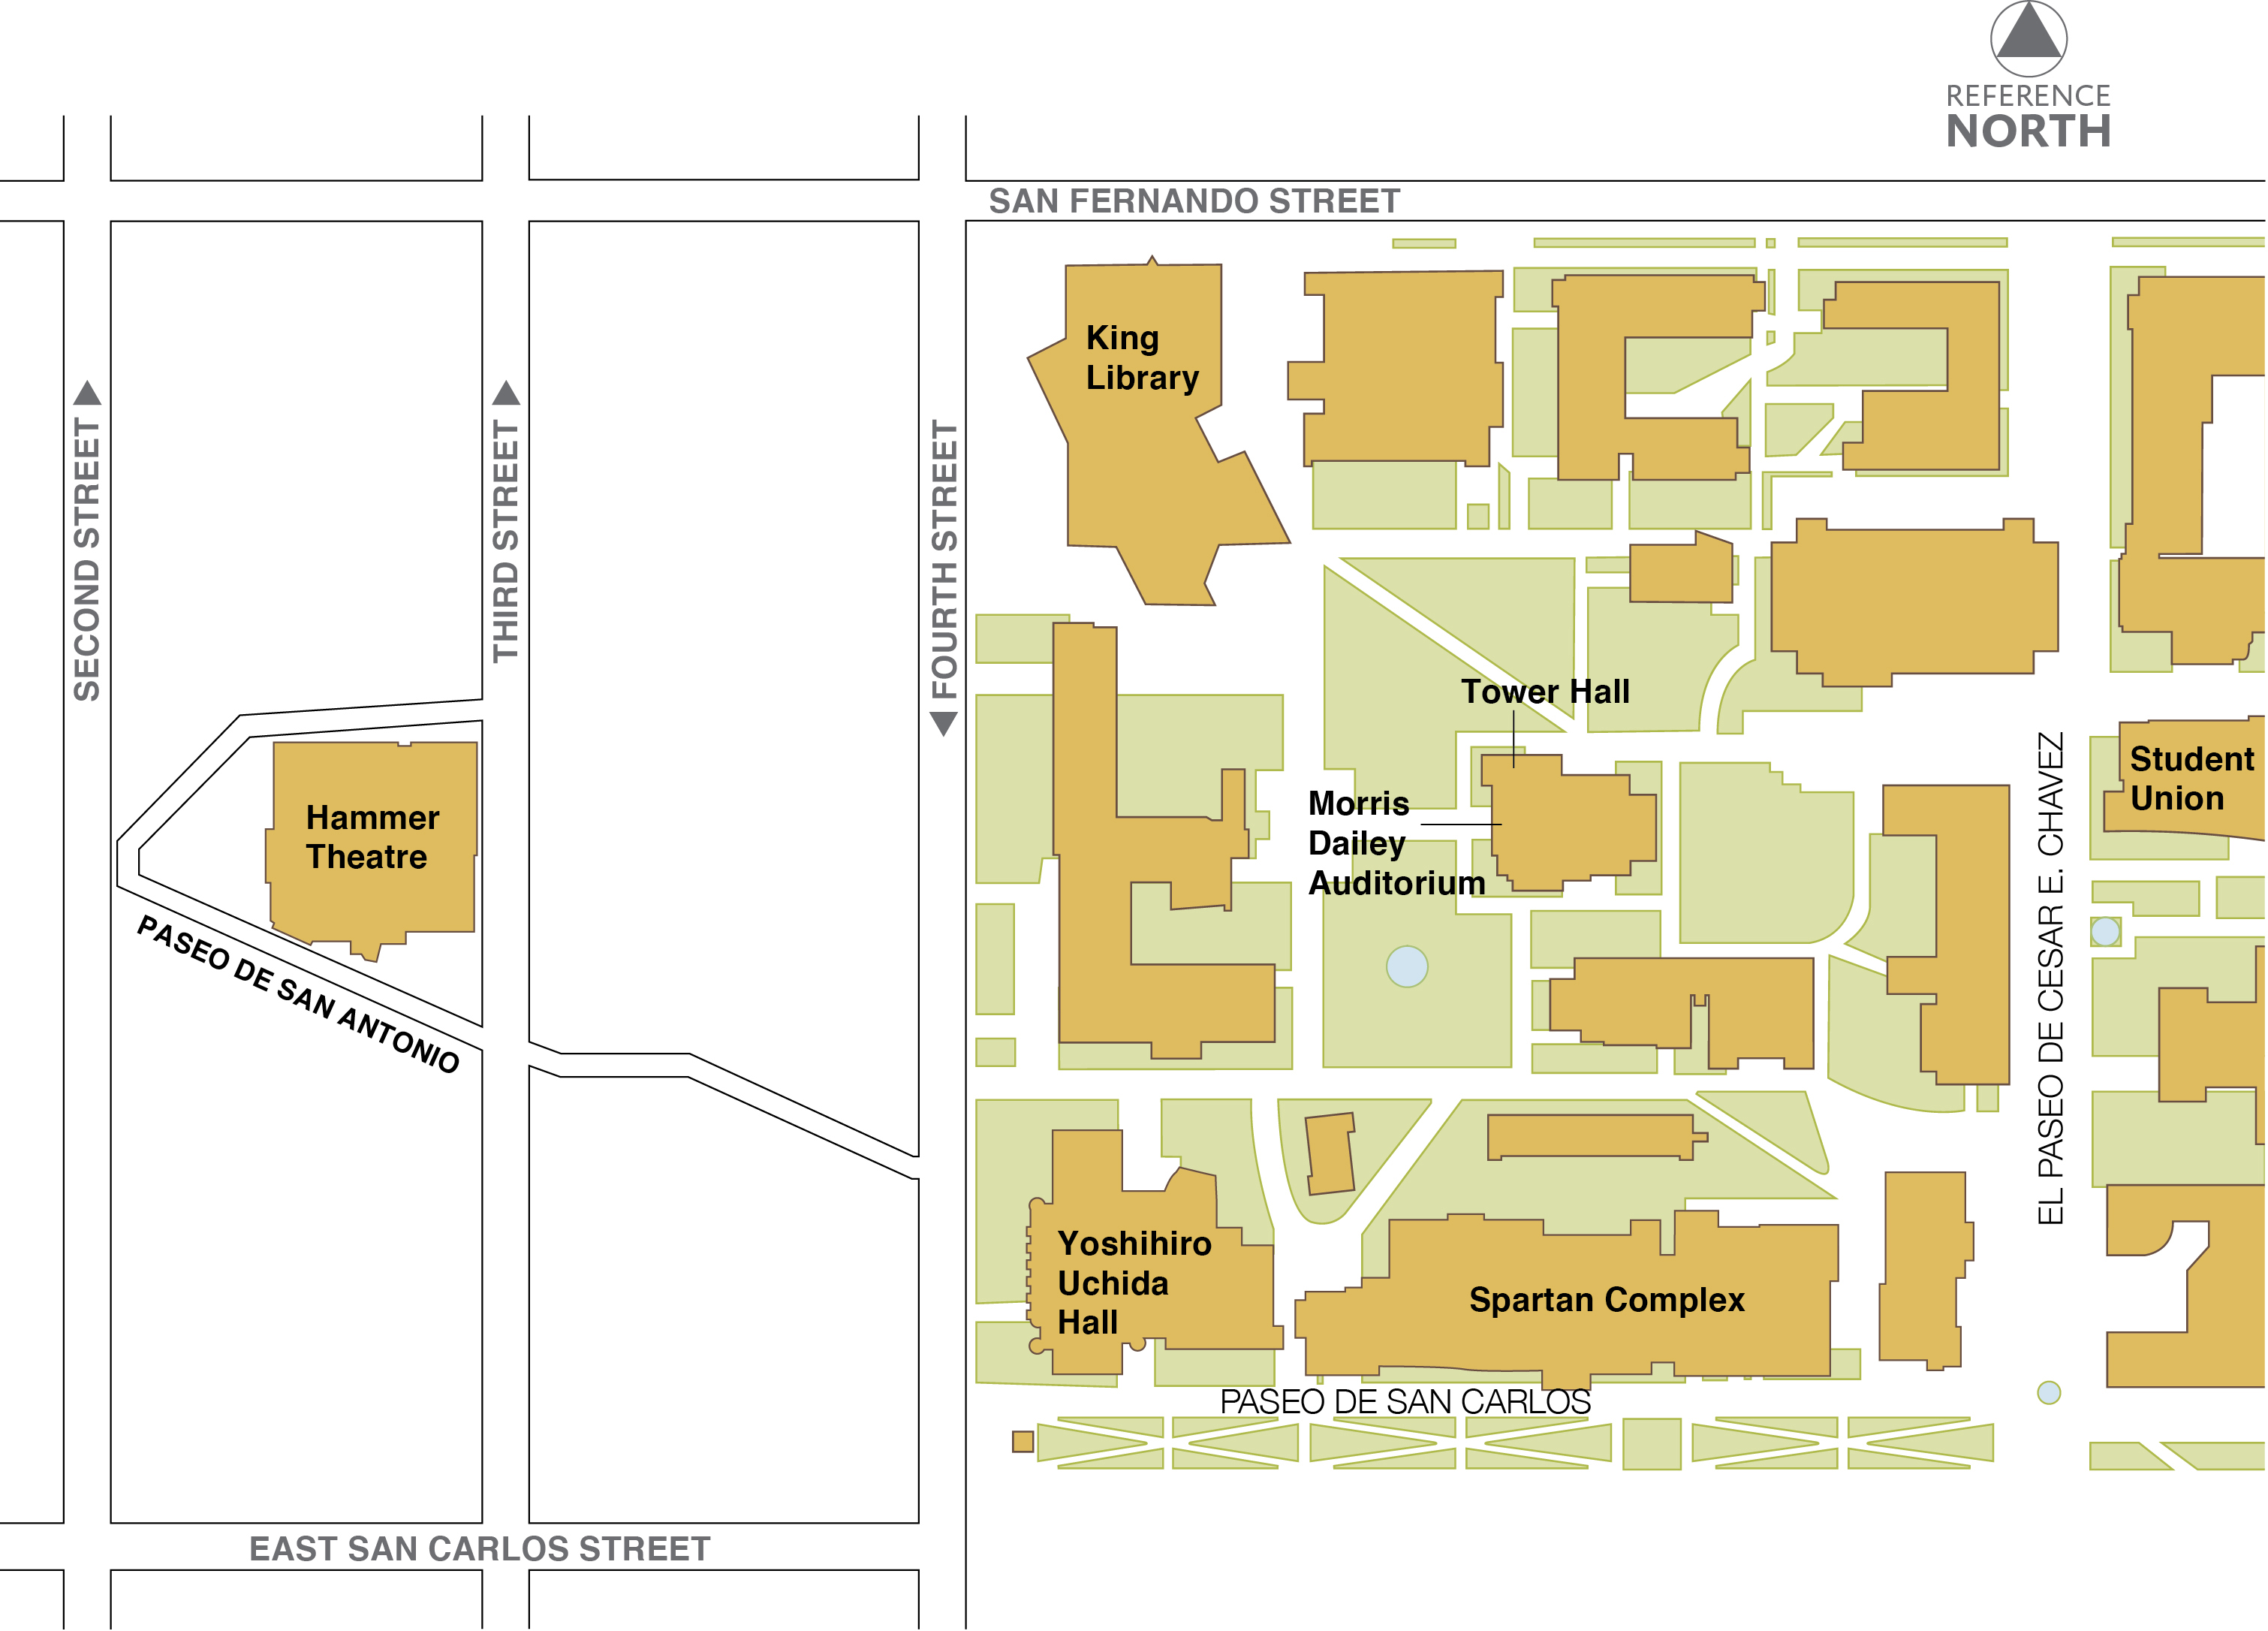 Main Campus Map | San Jose State University on ohio state residence halls, app state sororities, app state cafeteria, app state bookstore, app state parking, penn state residence halls, app state student life, app state university dorms, app state wrestling camp, boise state residence halls, app state library, app state greek life, penn state pollock halls, app state football facilities, illinois state residence halls, nc state residence halls, app state human resources, app state history, app state dining, app state dorm room,